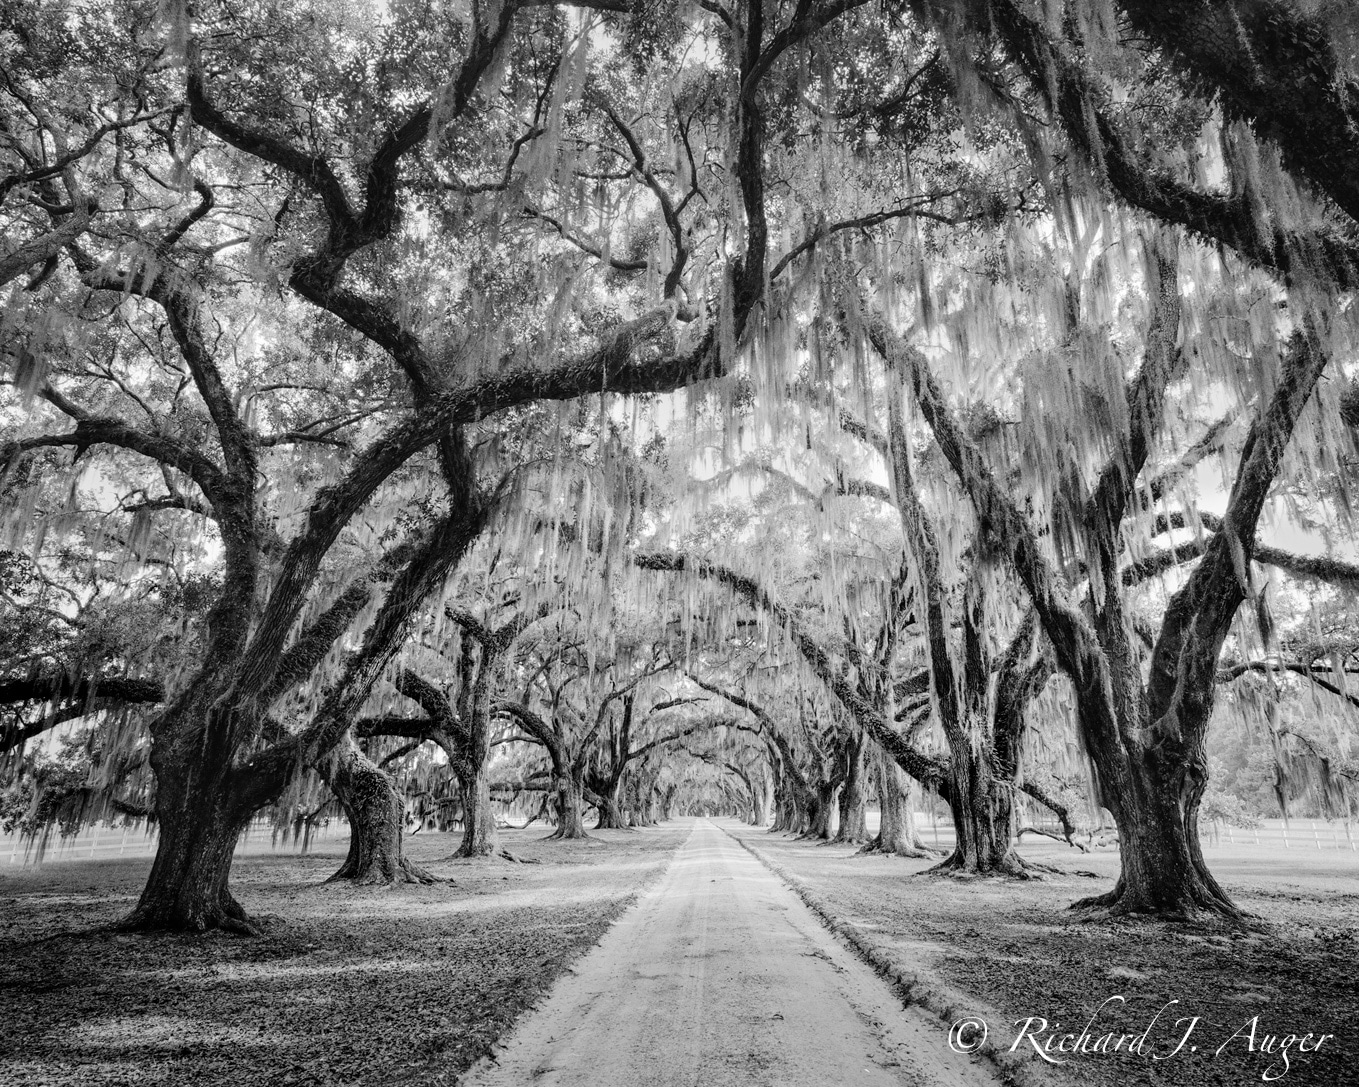 Low Country, South Carolina, Oak Trees, Canopy, Road, Black and White